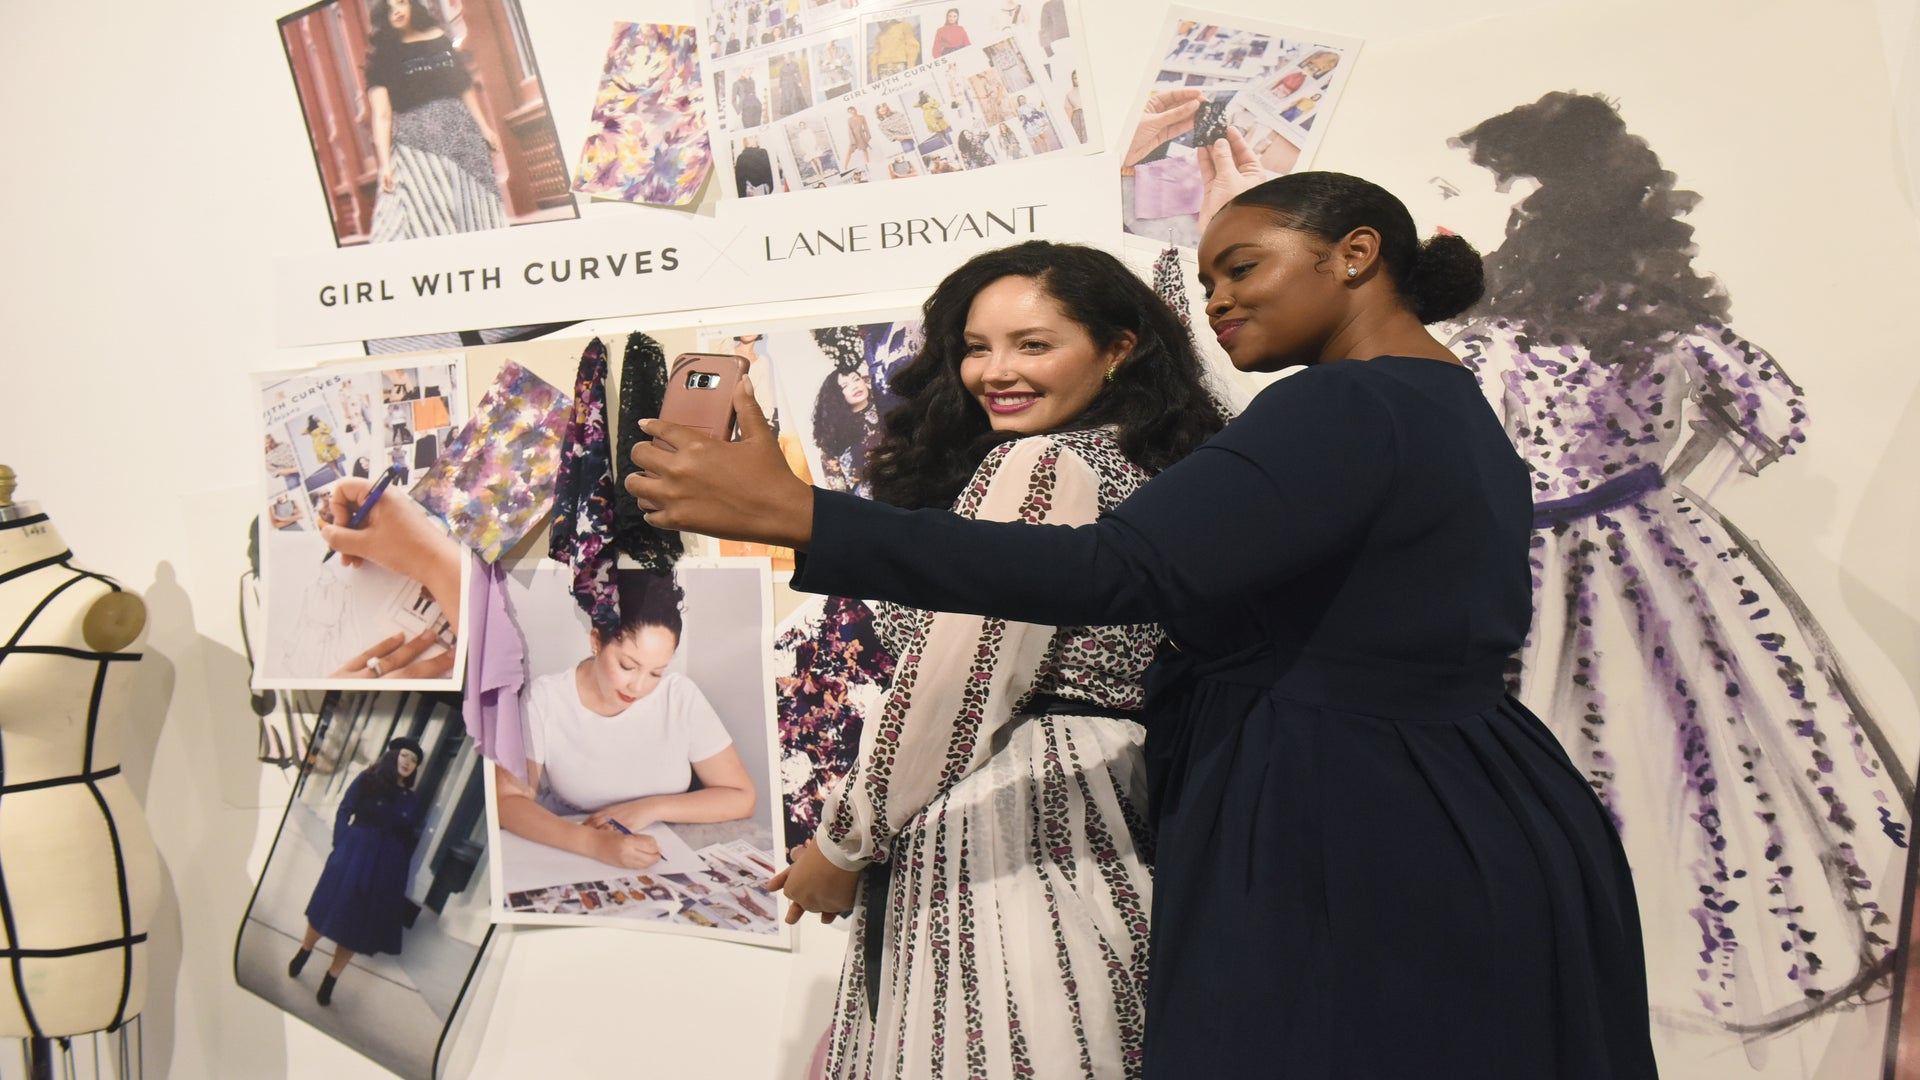 Girl With Curves Teams Up With Lane Bryant To Create A New Eye-Catching Collection